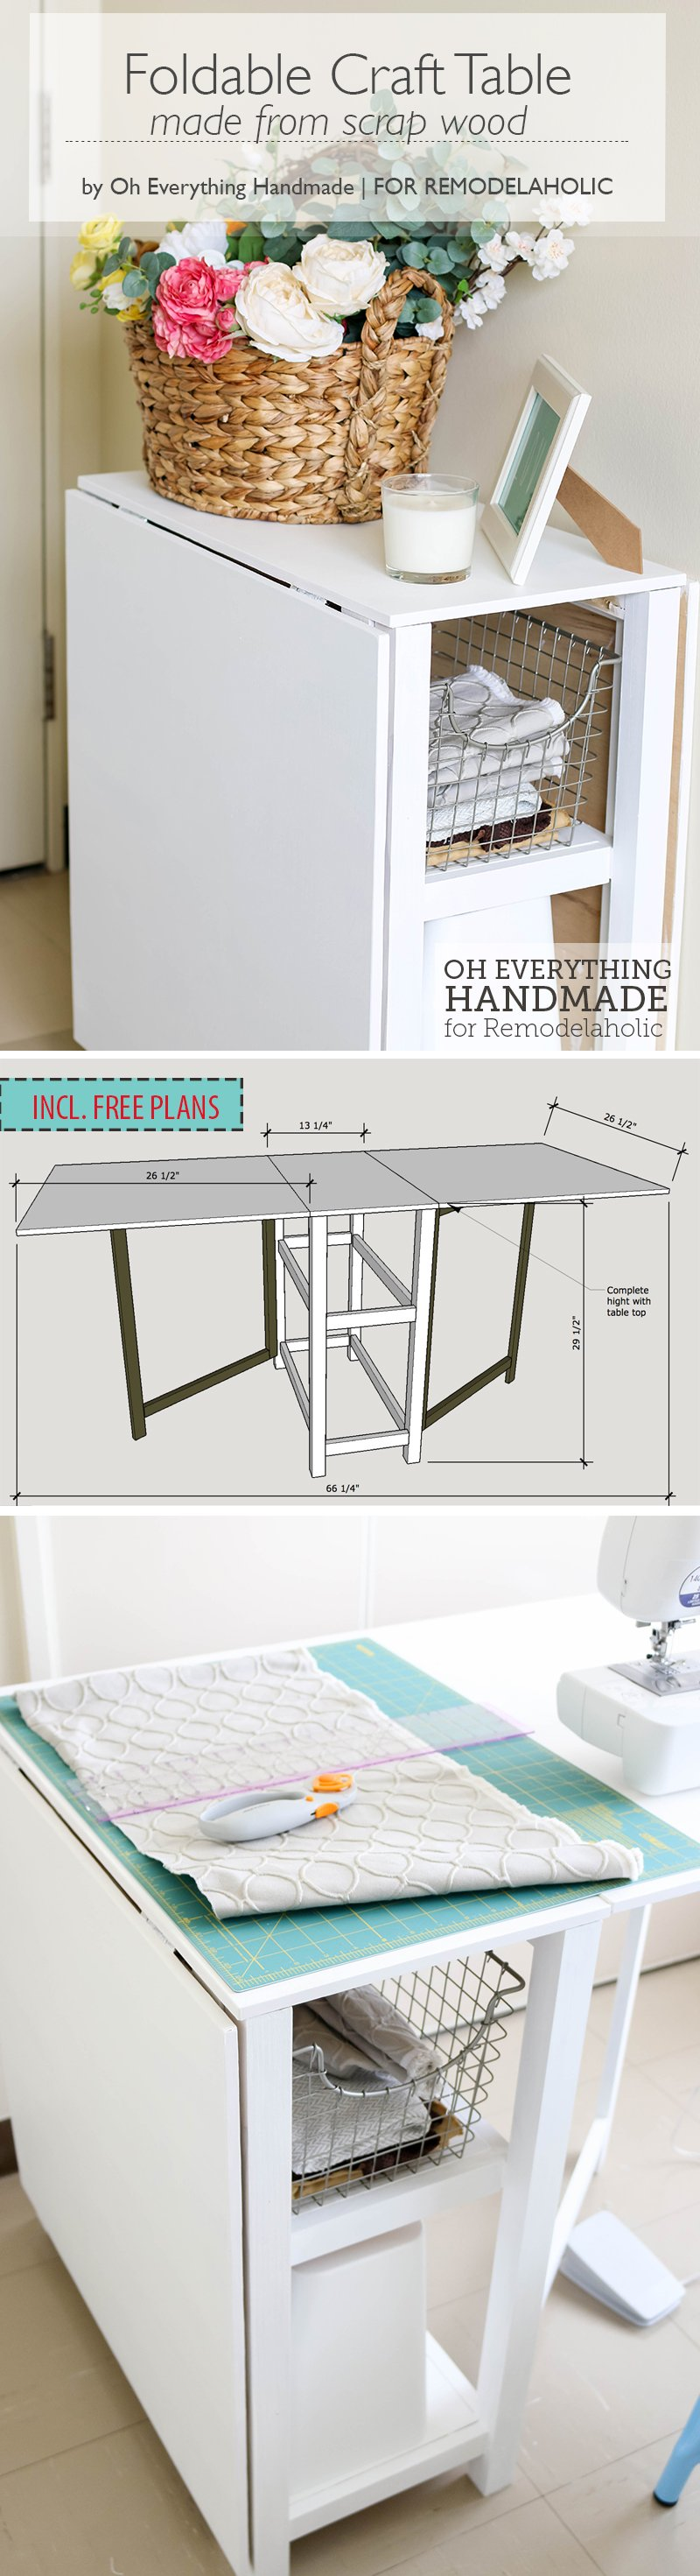 DIY Foldable Craft Table